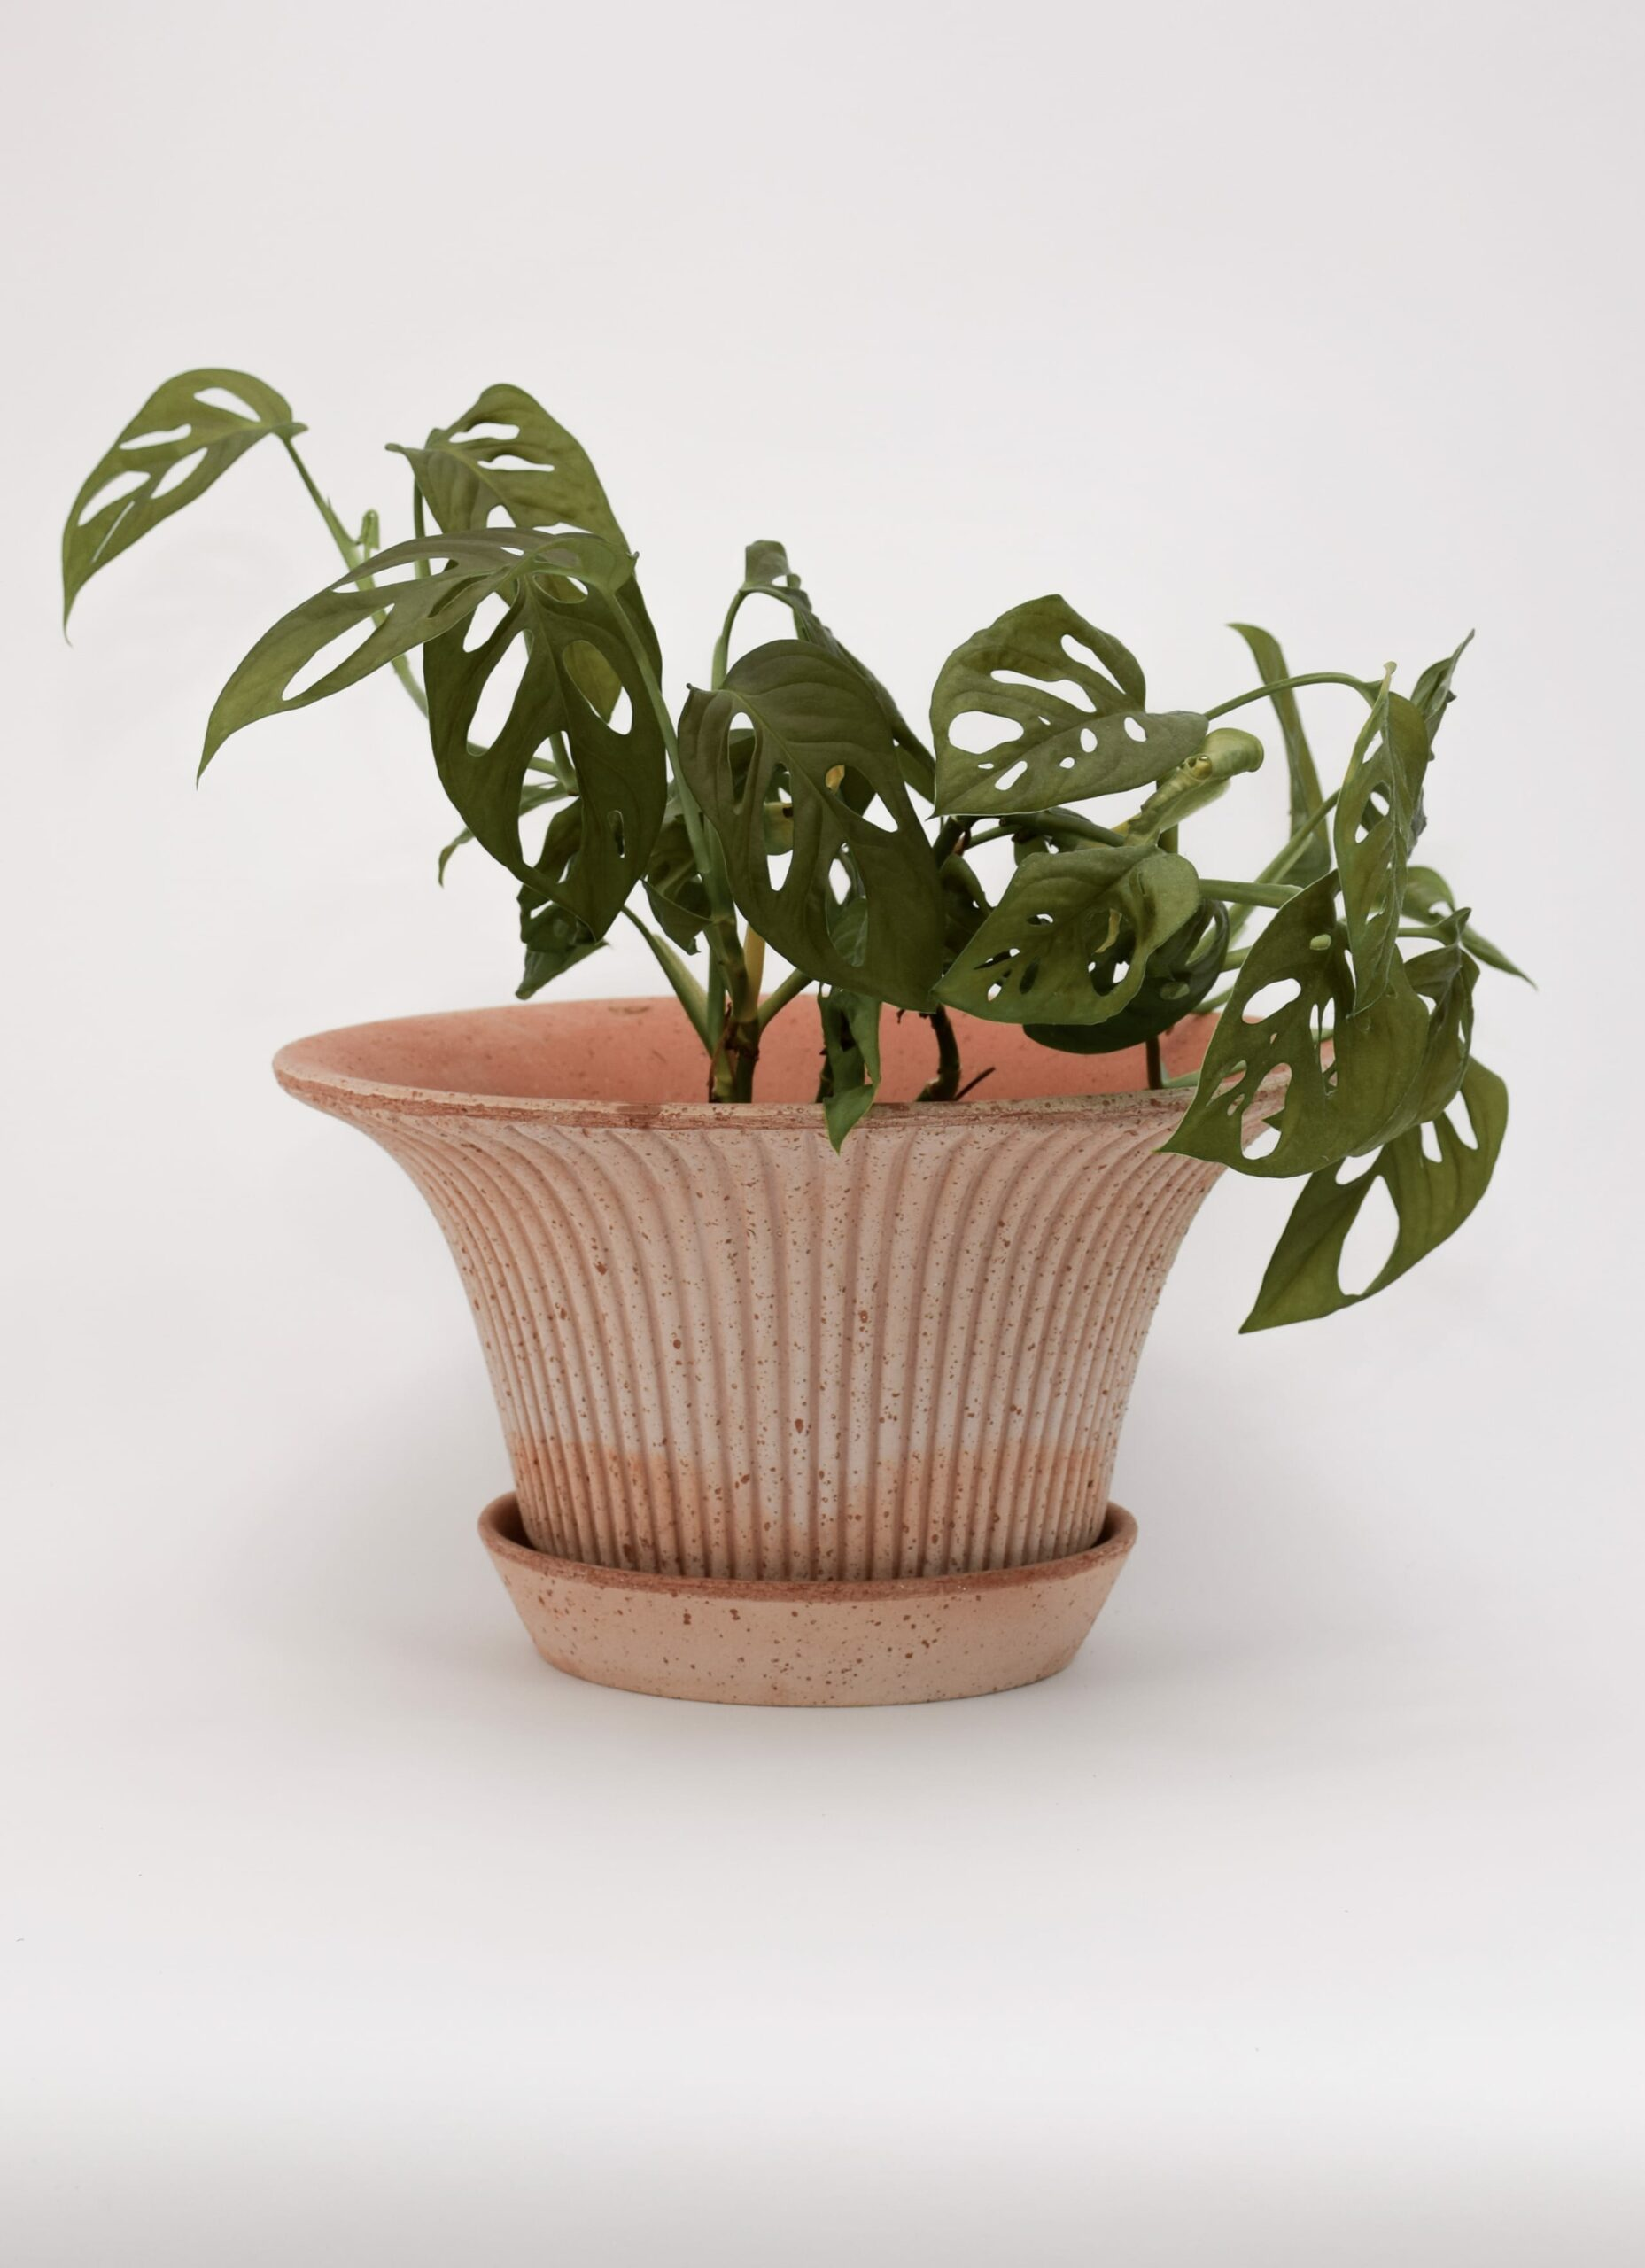 Bergs Potter - Plant Pot with Saucer - Daisy - natural - two sizes